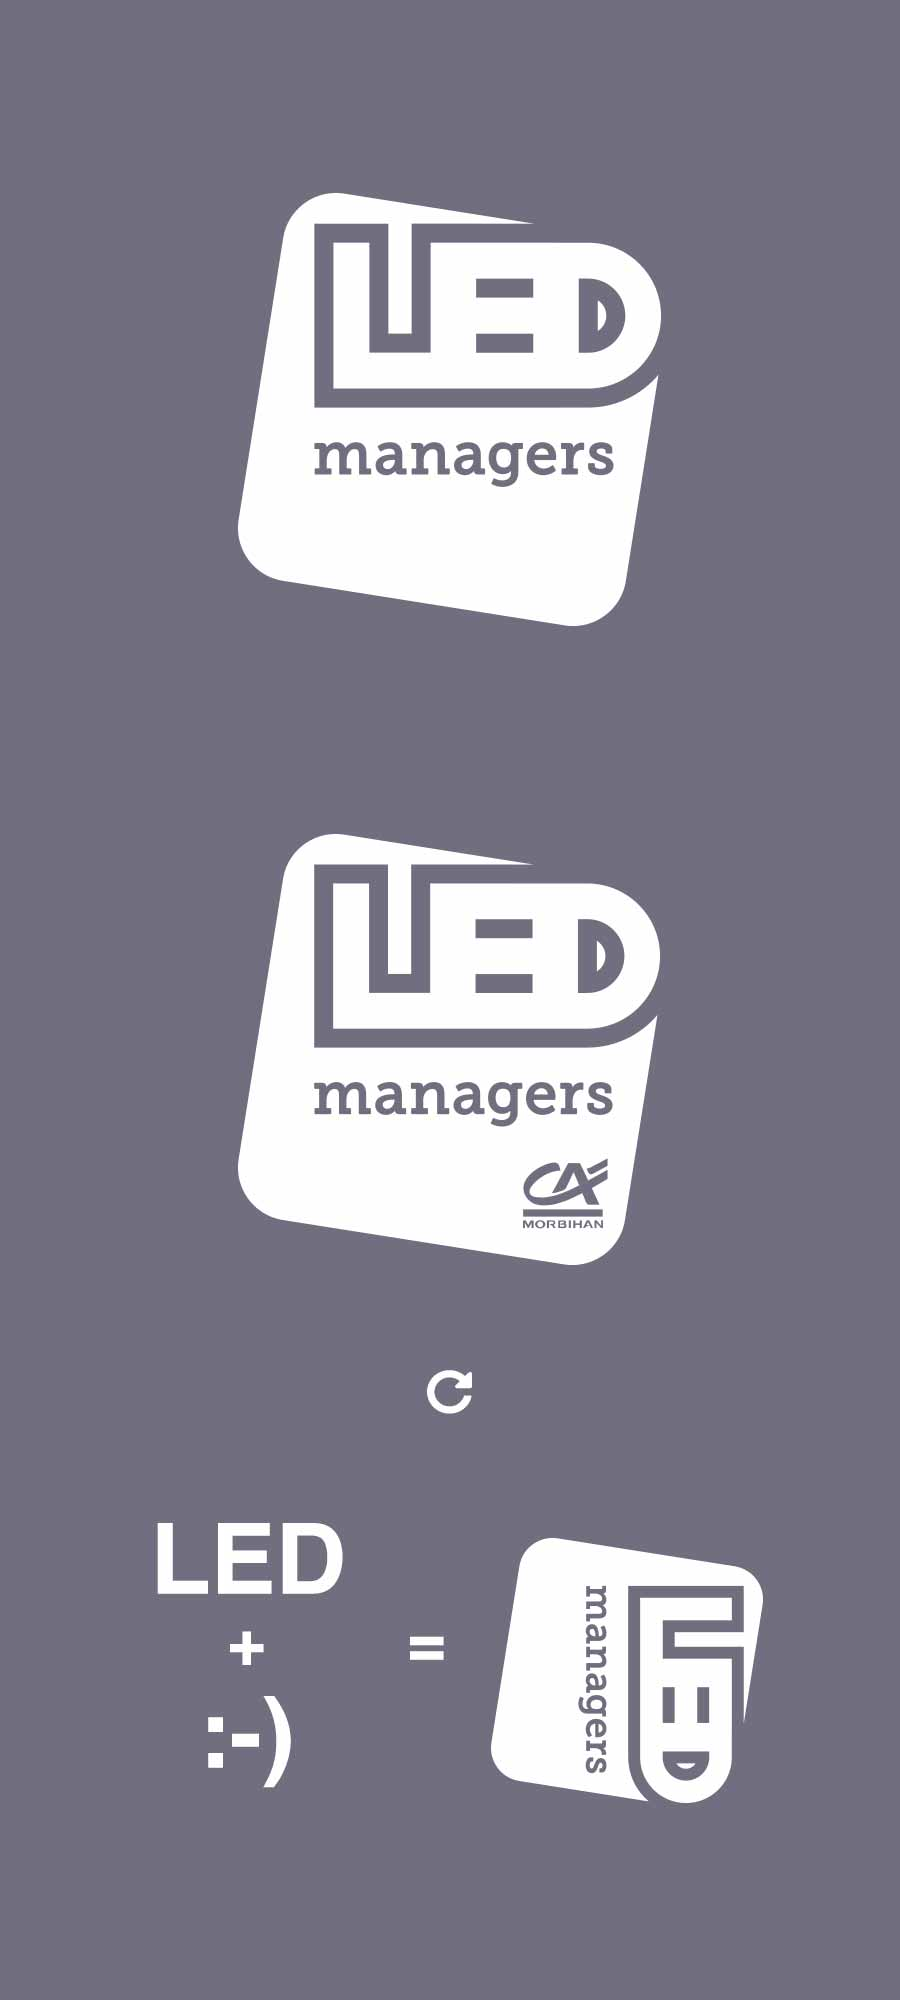 différentes versions du logo LED managers et explication